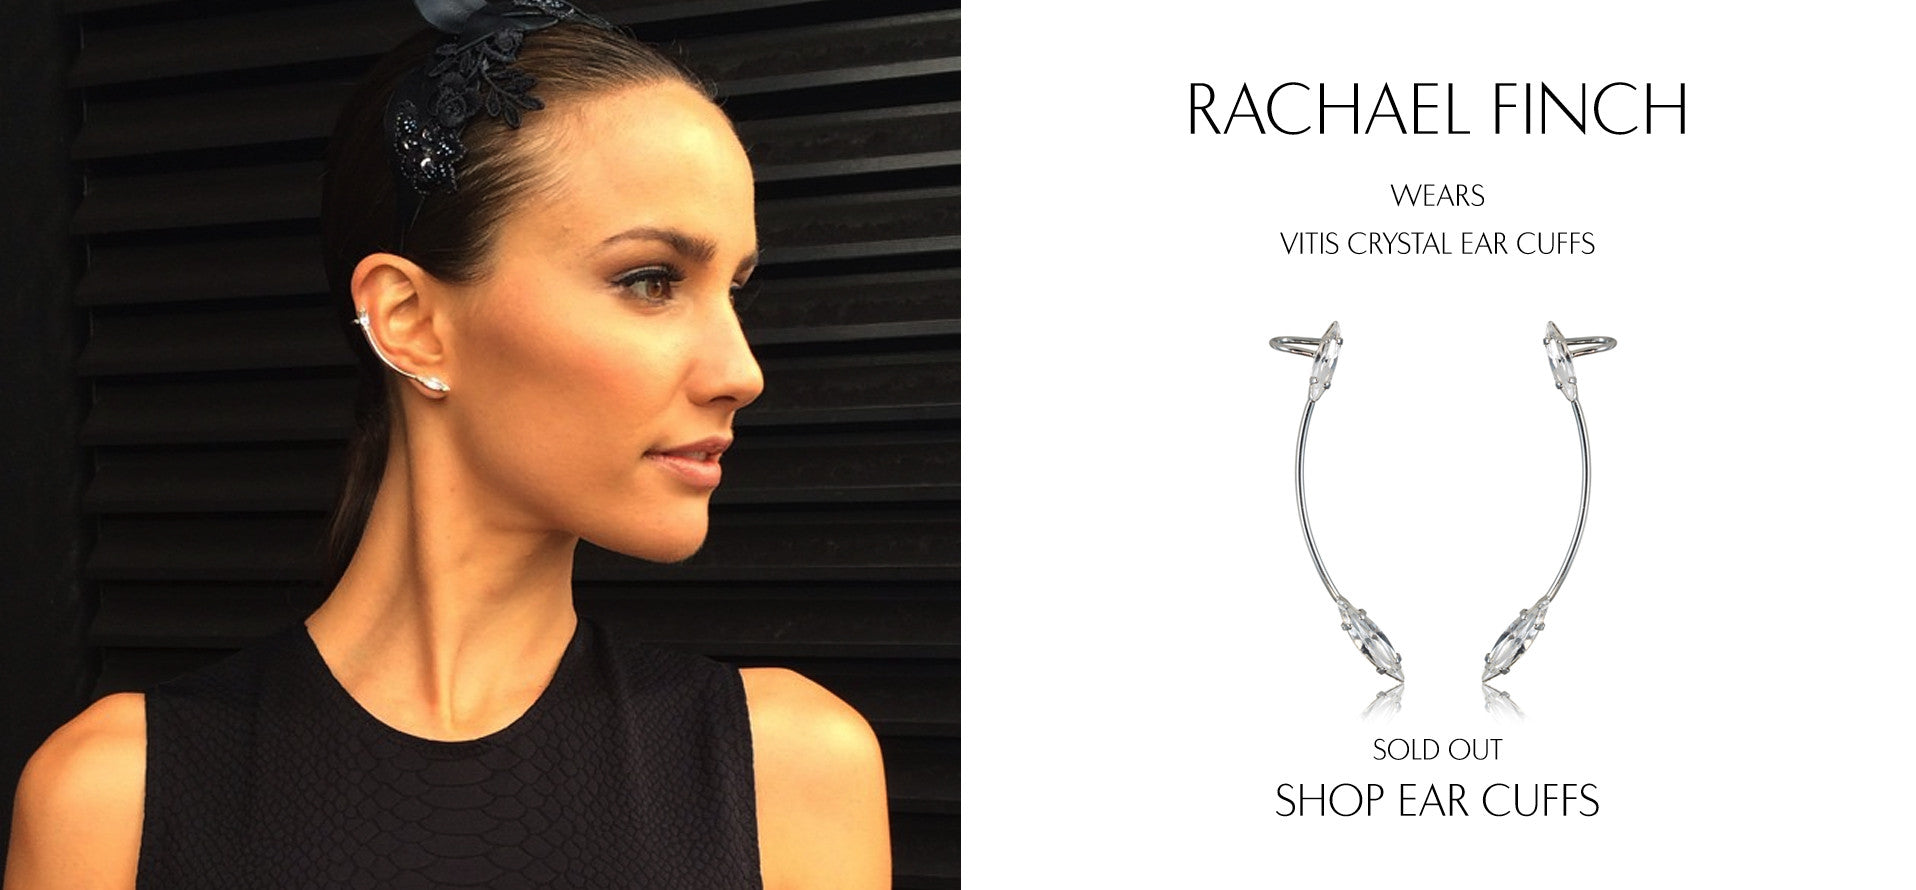 Model Rachael Finch wears Sarina Suriano Vitis crystal earcuffs